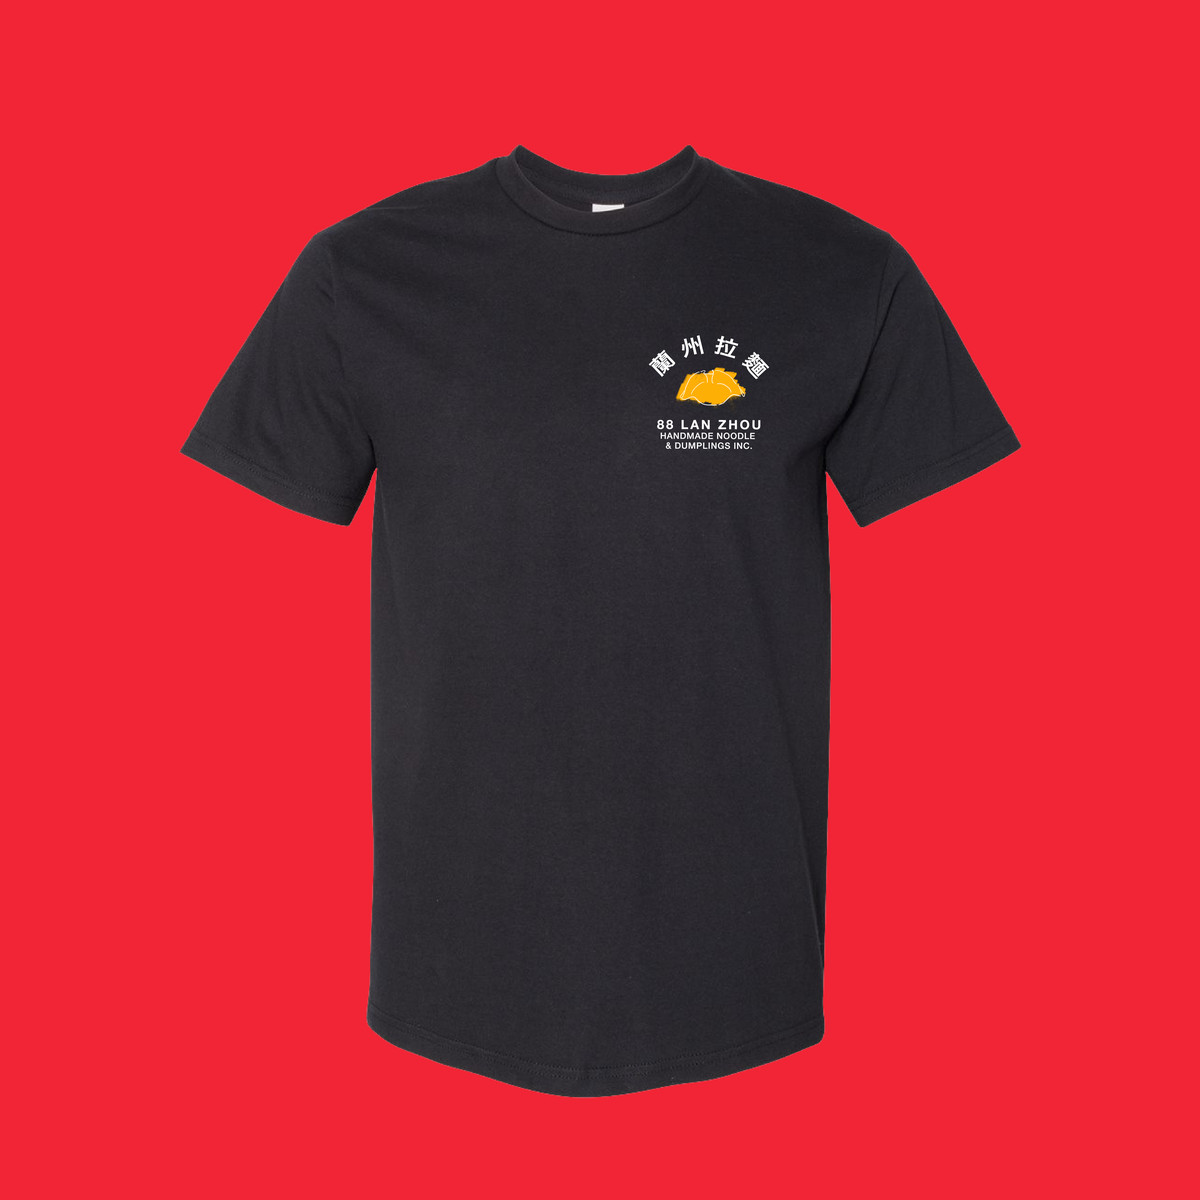 A stock image of a black t-shirt with a small image of a yellow dumping appears over a red background